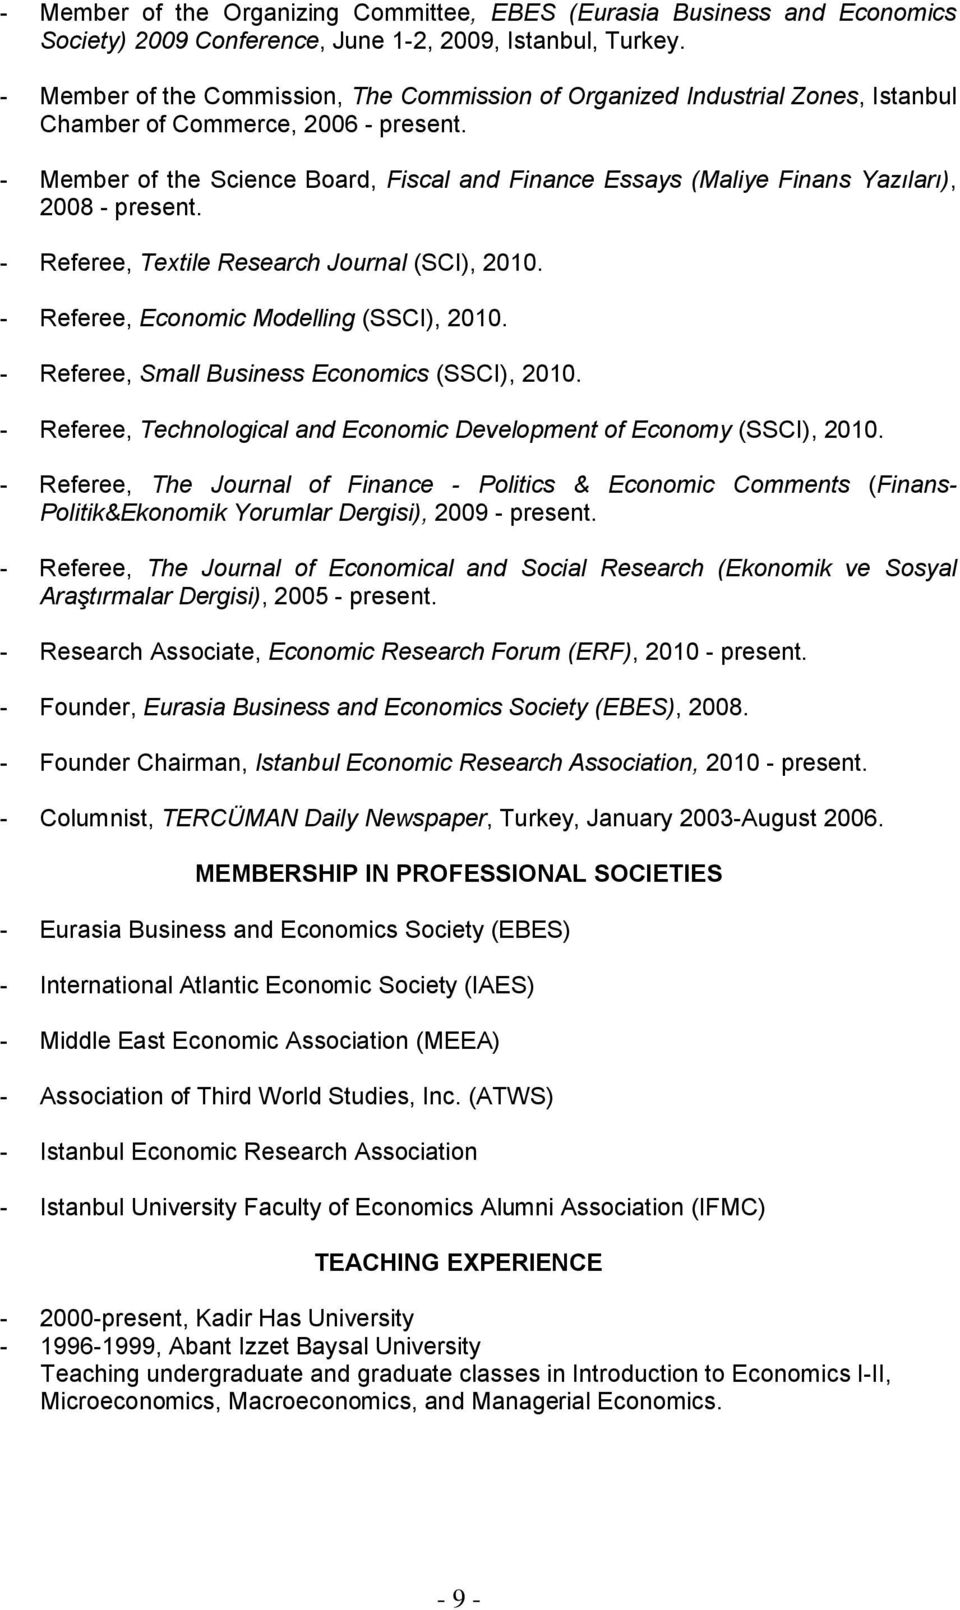 - Member of the Science Board, Fiscal and Finance Essays (Maliye Finans Yazıları), 2008 - present. - Referee, Textile Research Journal (SCI), 2010. - Referee, Economic Modelling (SSCI), 2010.